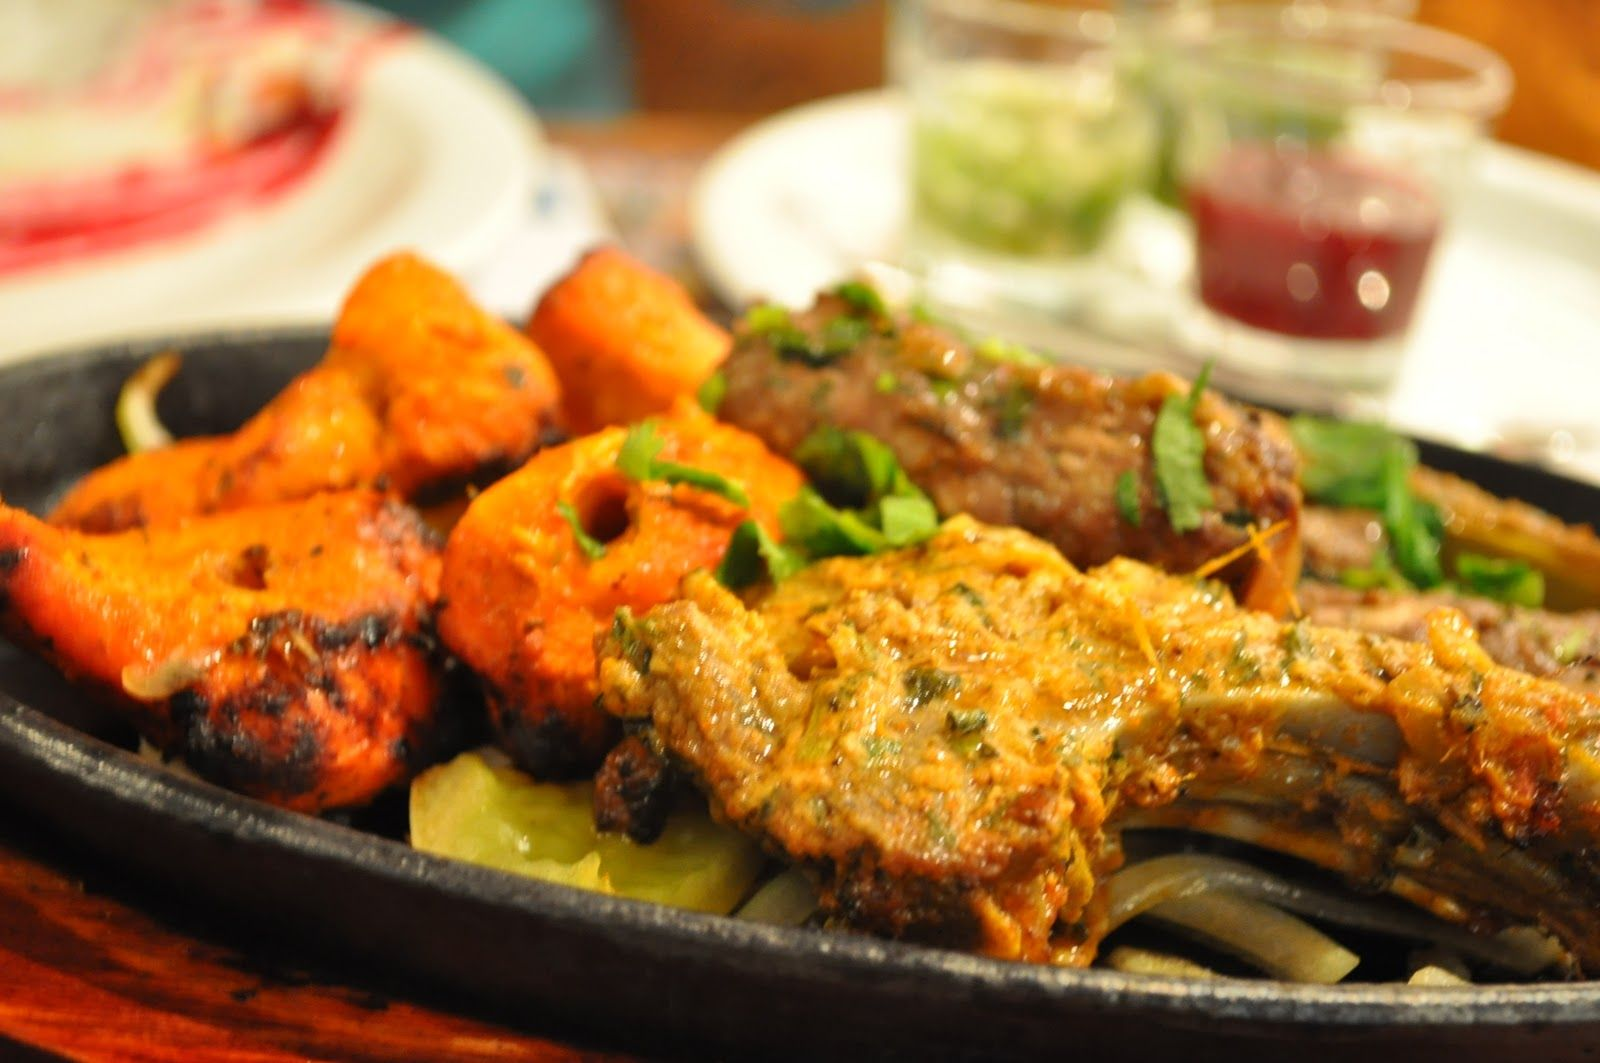 Pin By Rui Ludovino On Food Indian Food Recipes Halal Recipes Food